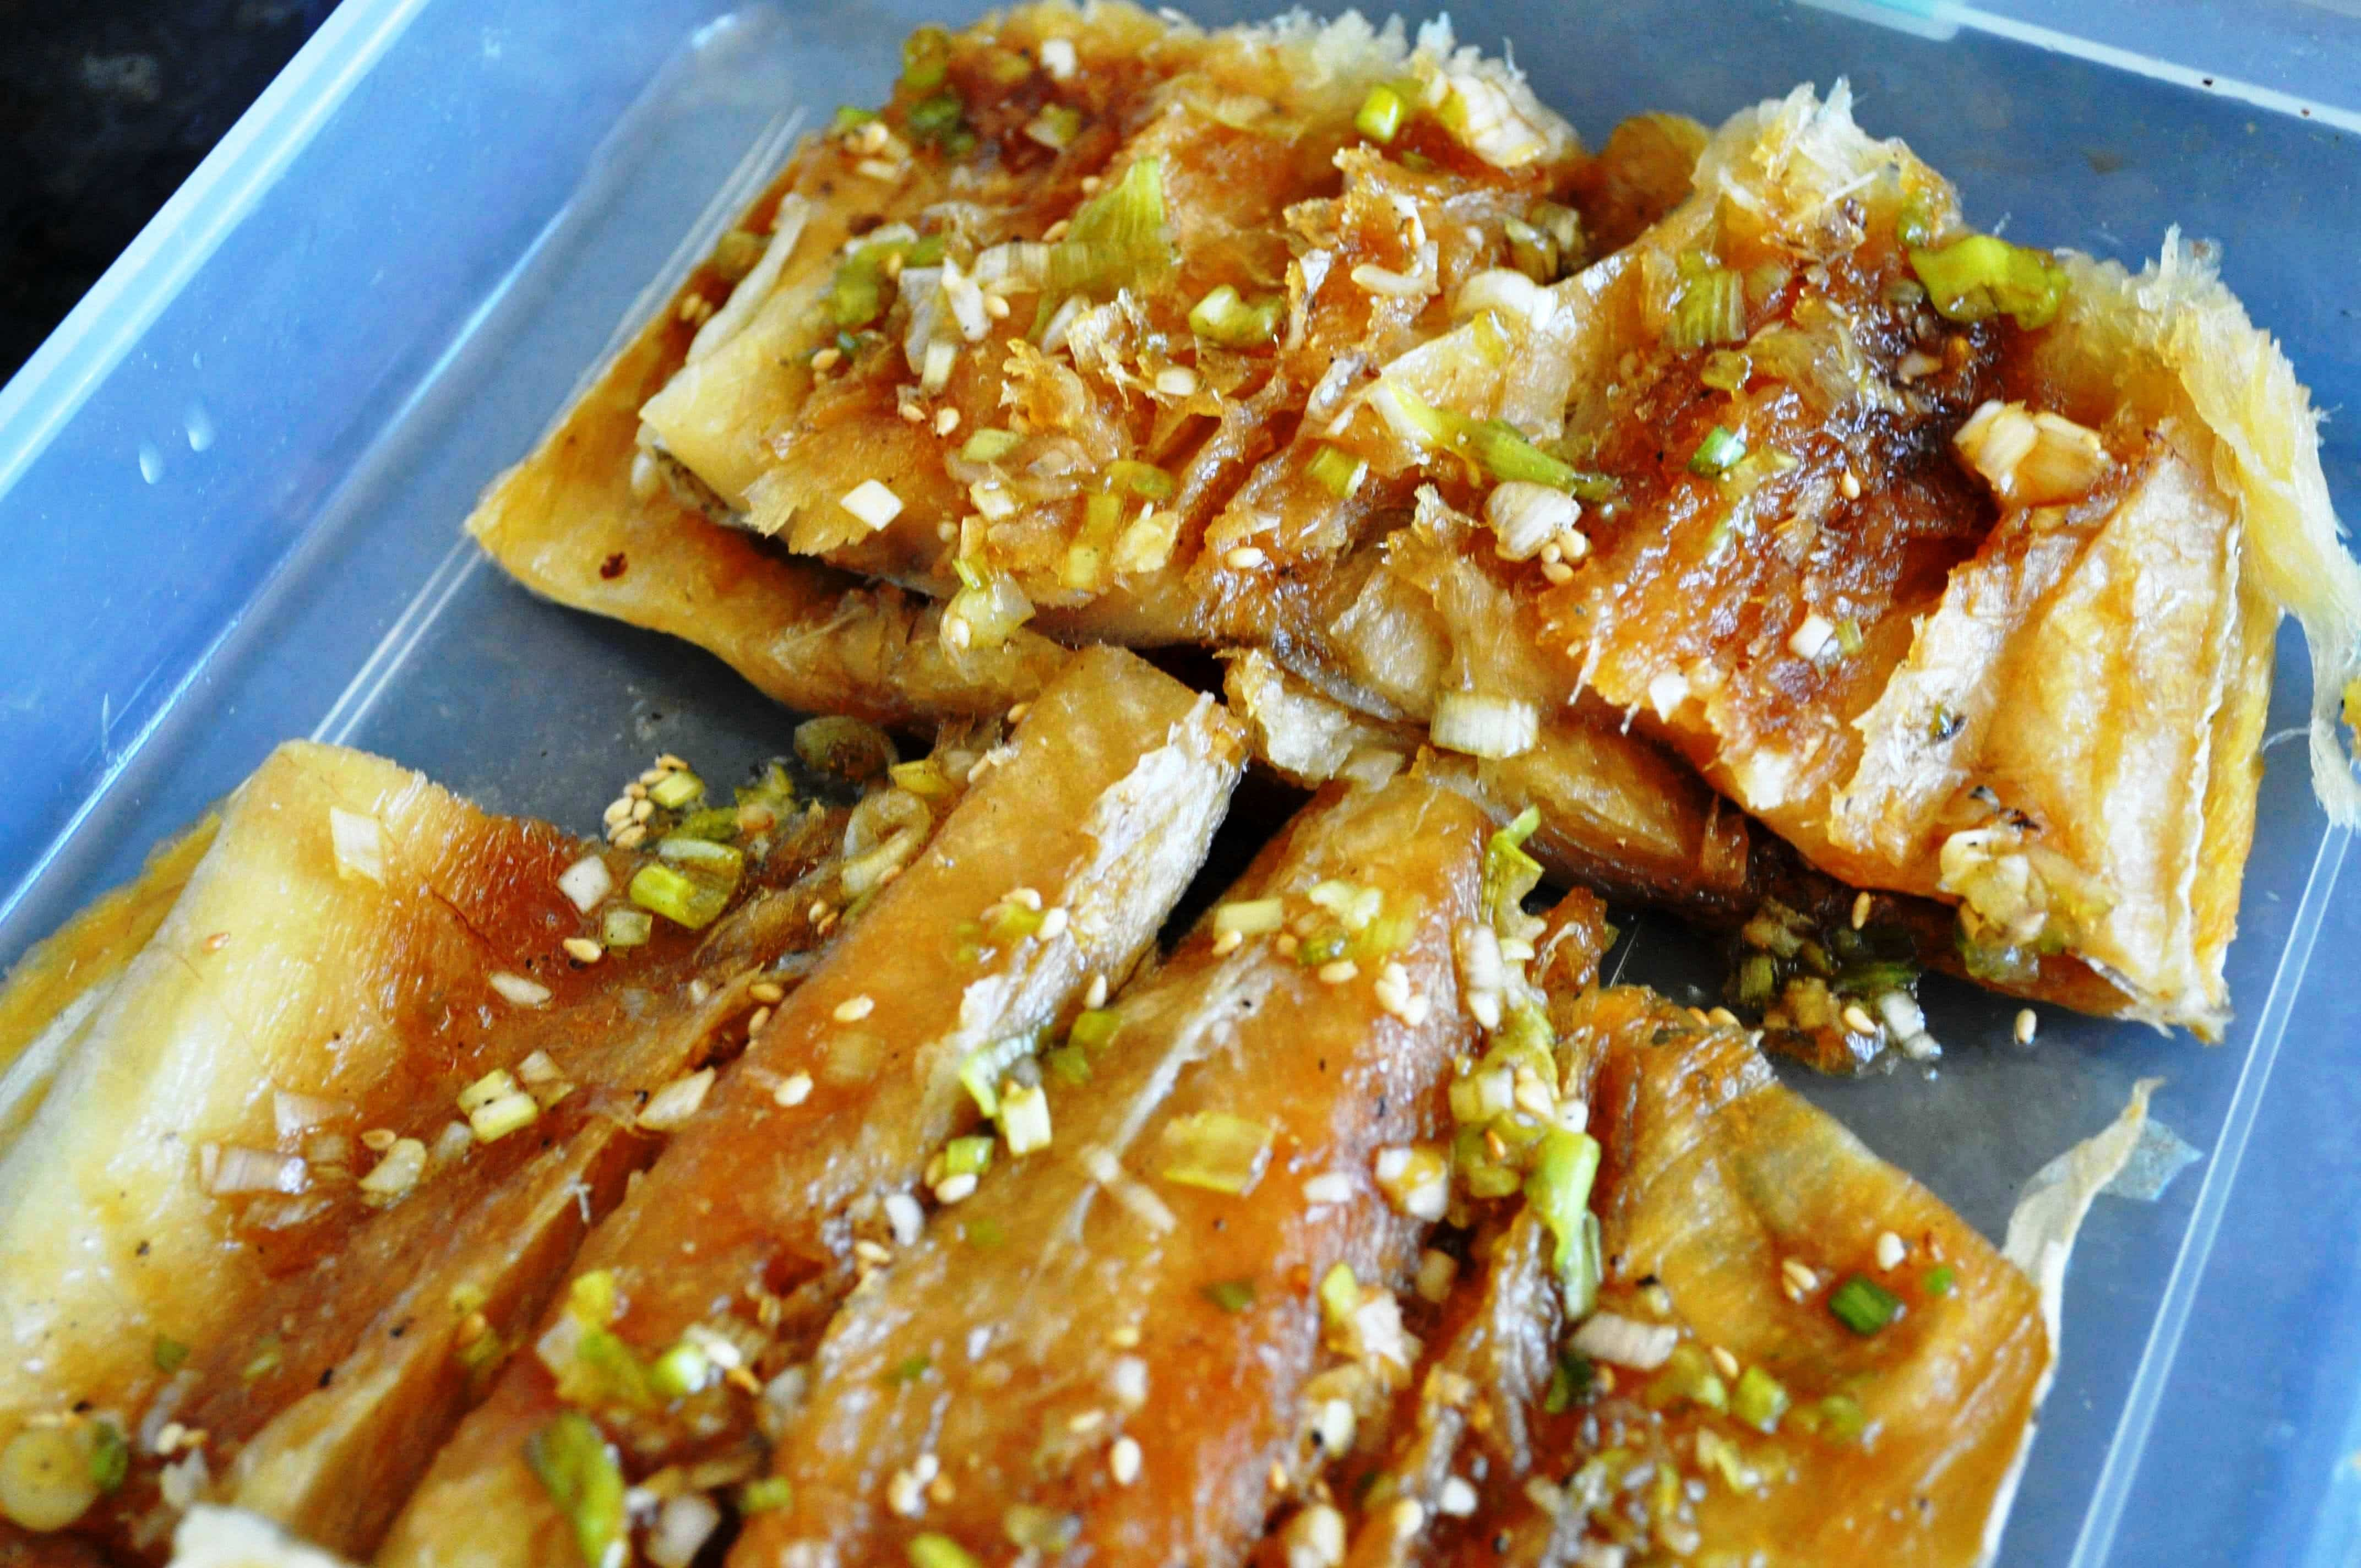 marinated dried pollock (bugeo)